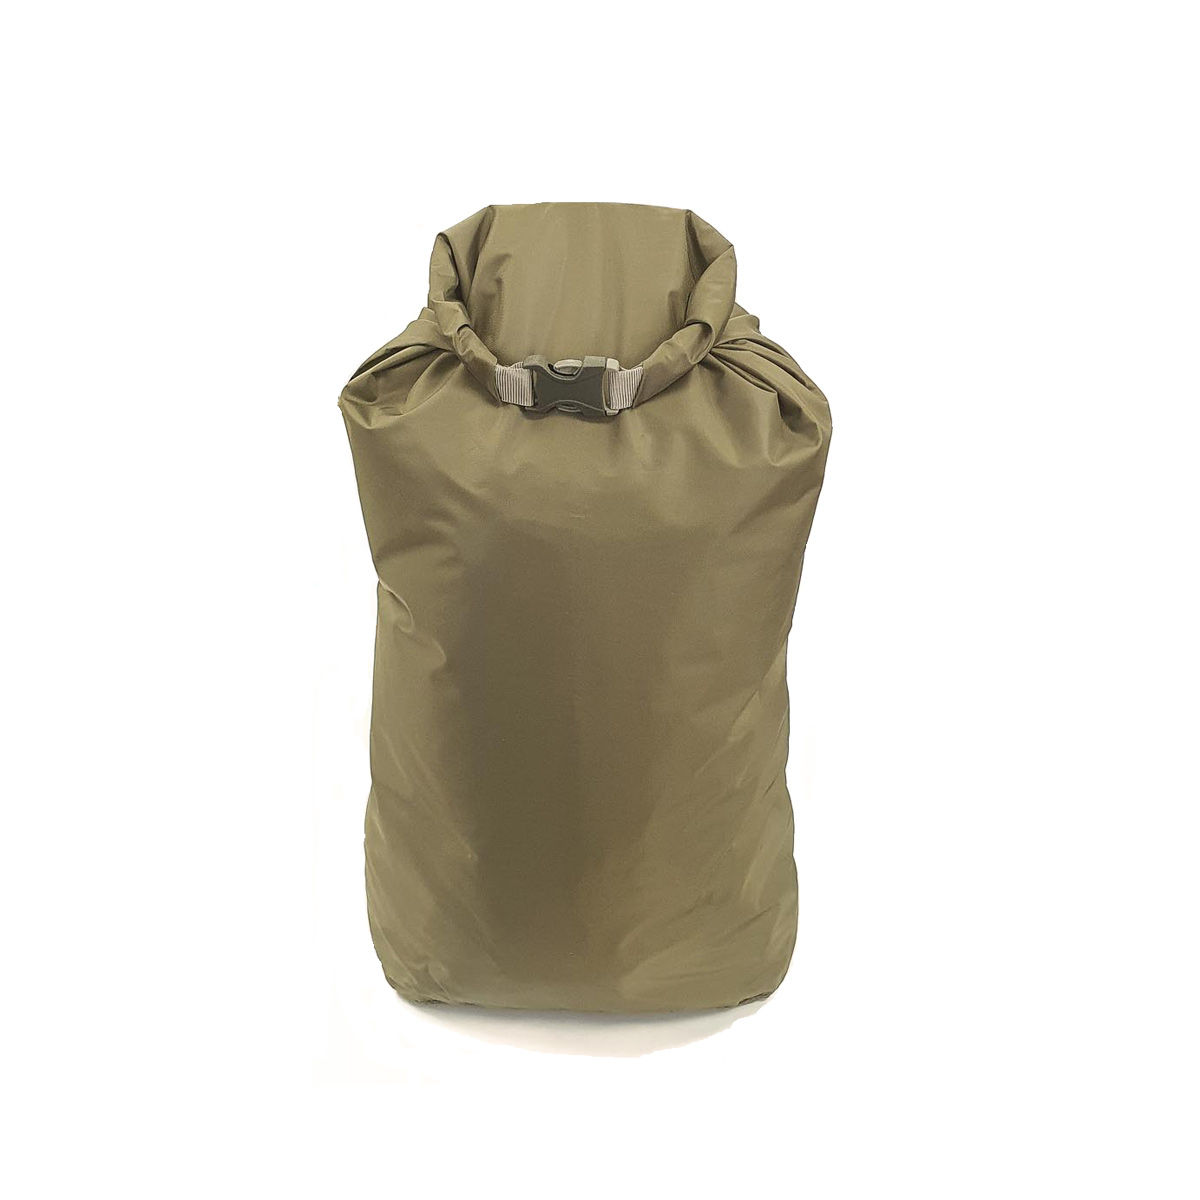 Exped Fold Dry Bag - 5 Litre